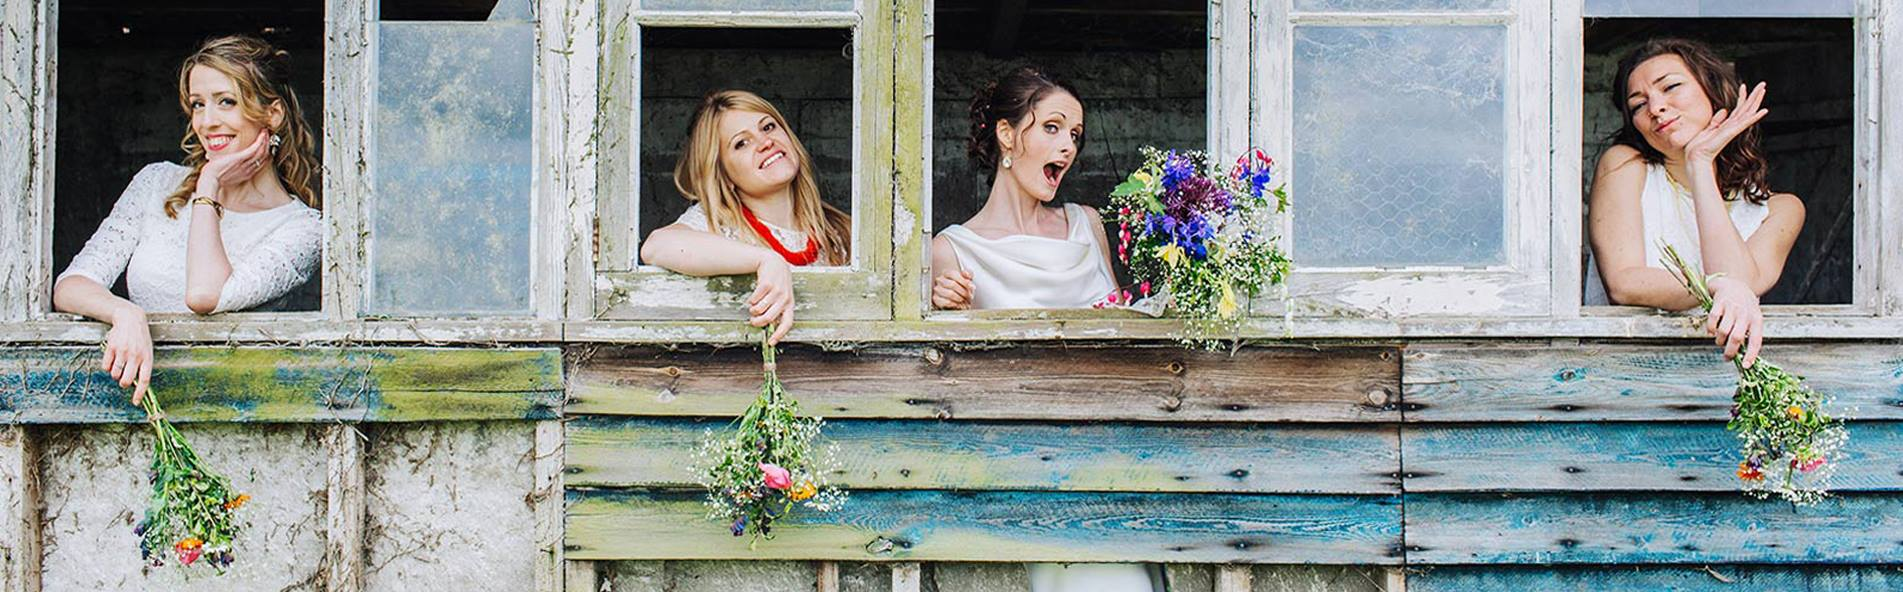 https://unconventionalwedding.co.uk/wp-content/uploads/2018/09/Yvonne-Lishman-Photography-Bridesmaid-Unconventional-Wedding-Banner-Picture.jpg